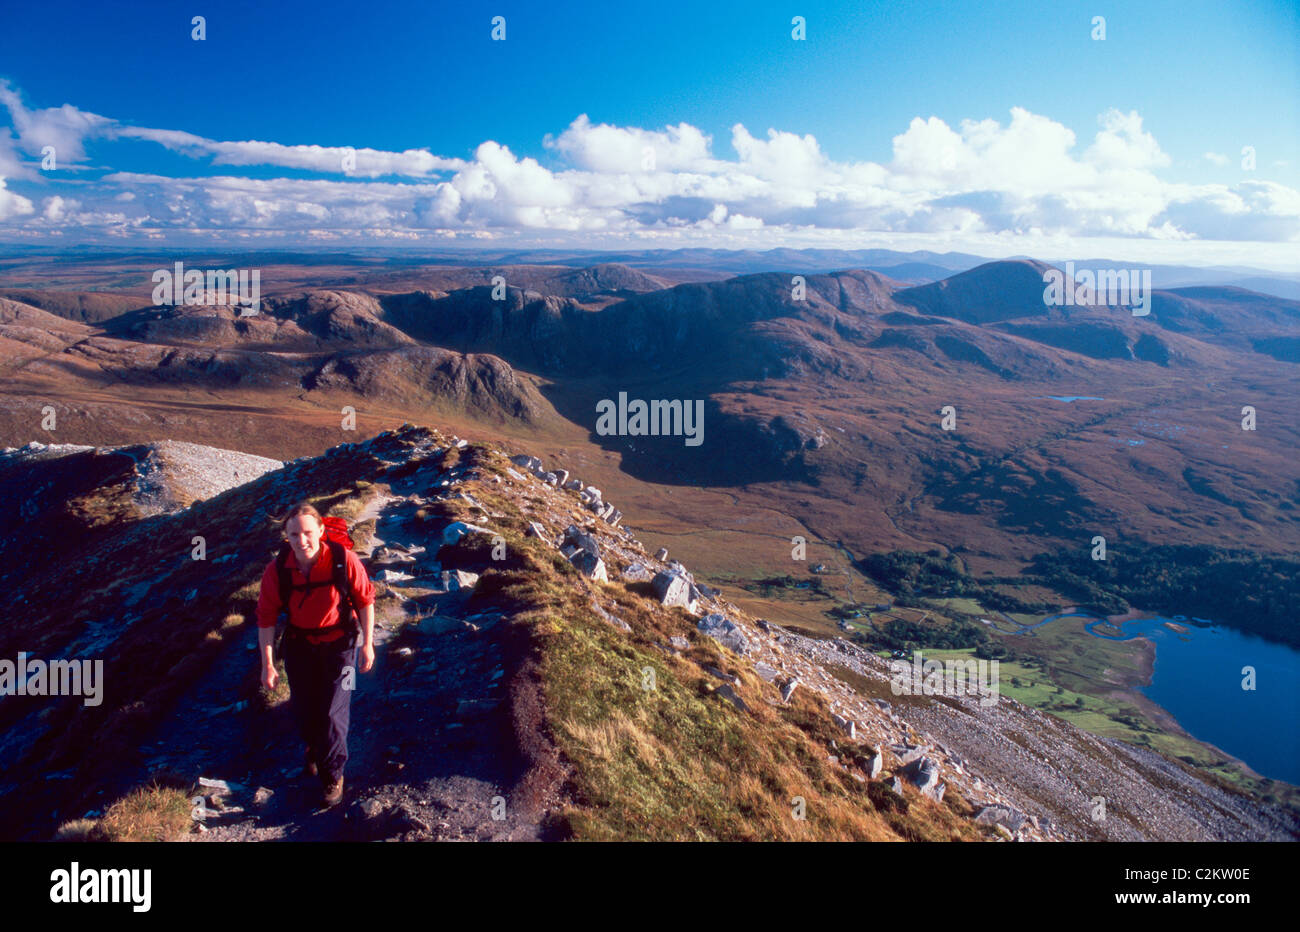 Walker on the summit ridge of Errigal Mountain, with the Derryveagh Mountains behind. County Donegal, Ireland. - Stock Image